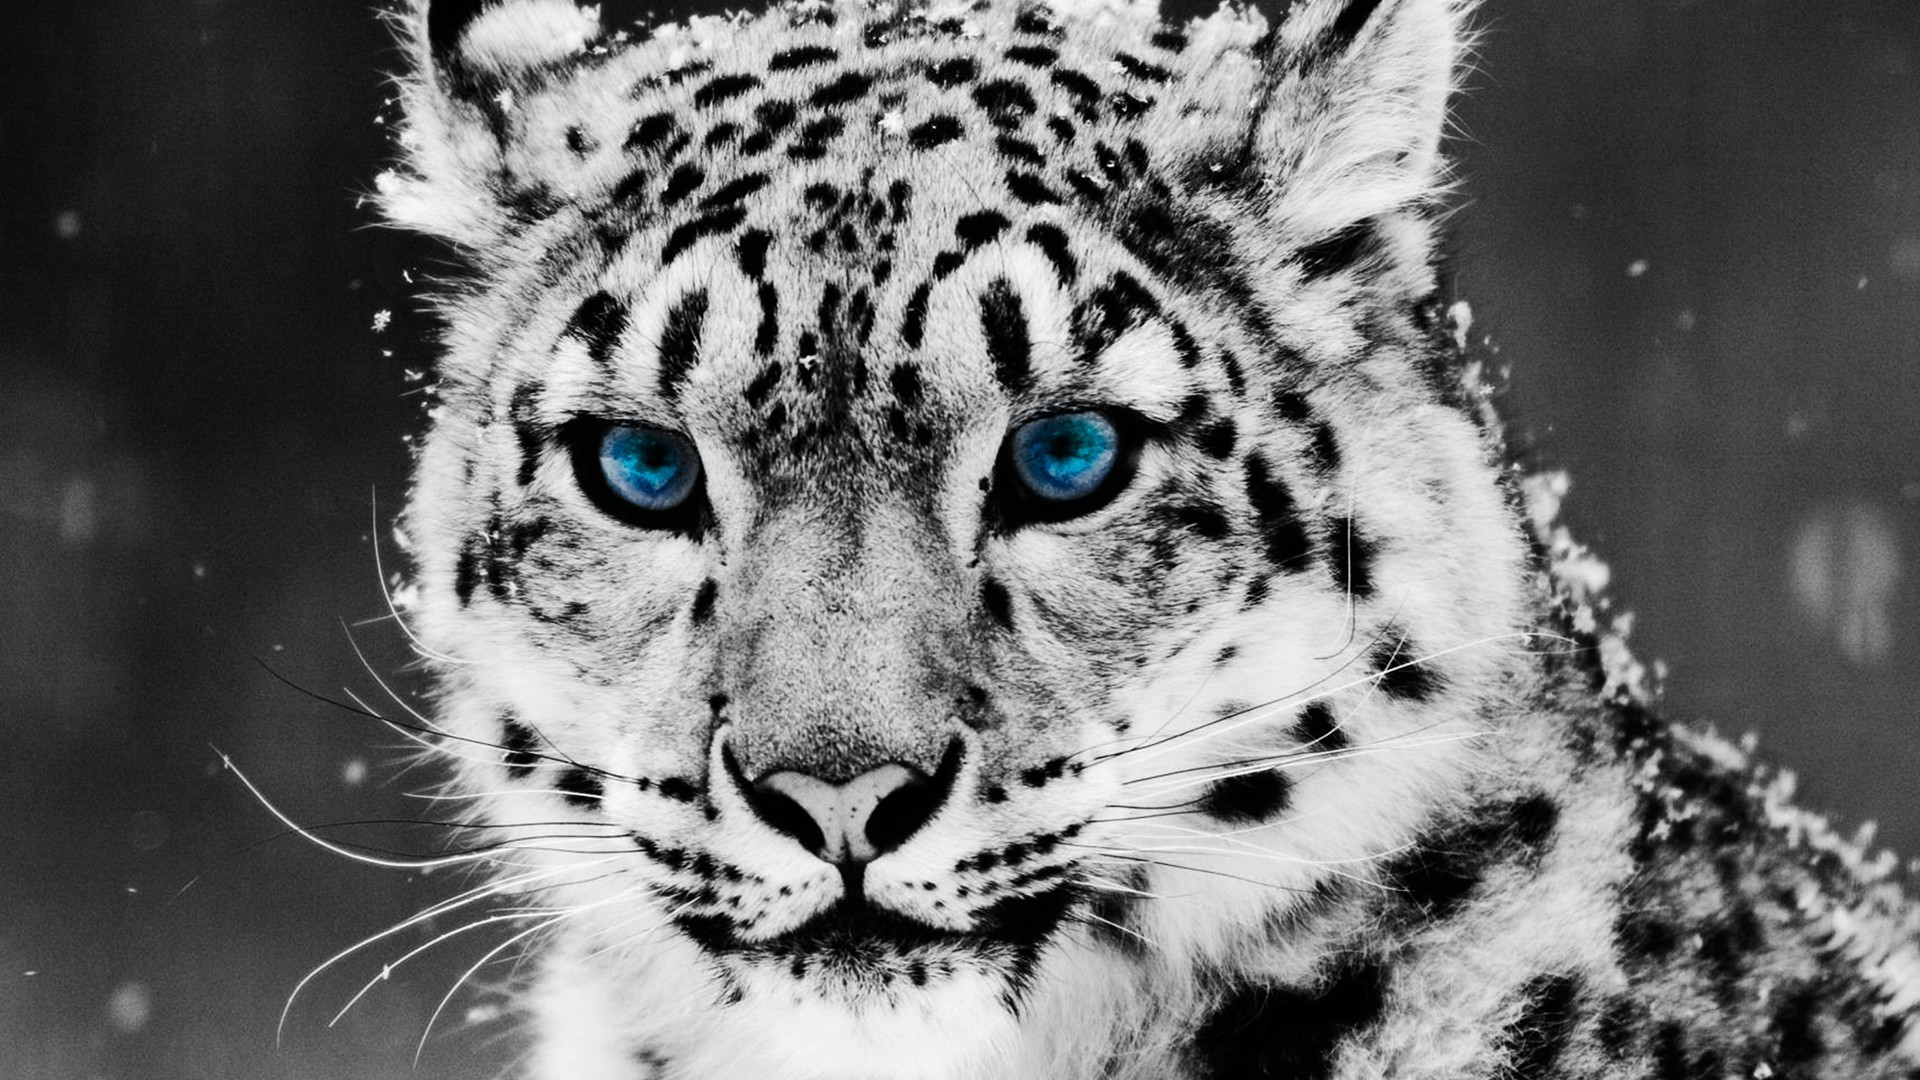 47+ cool animal wallpapers ·① download free beautiful high